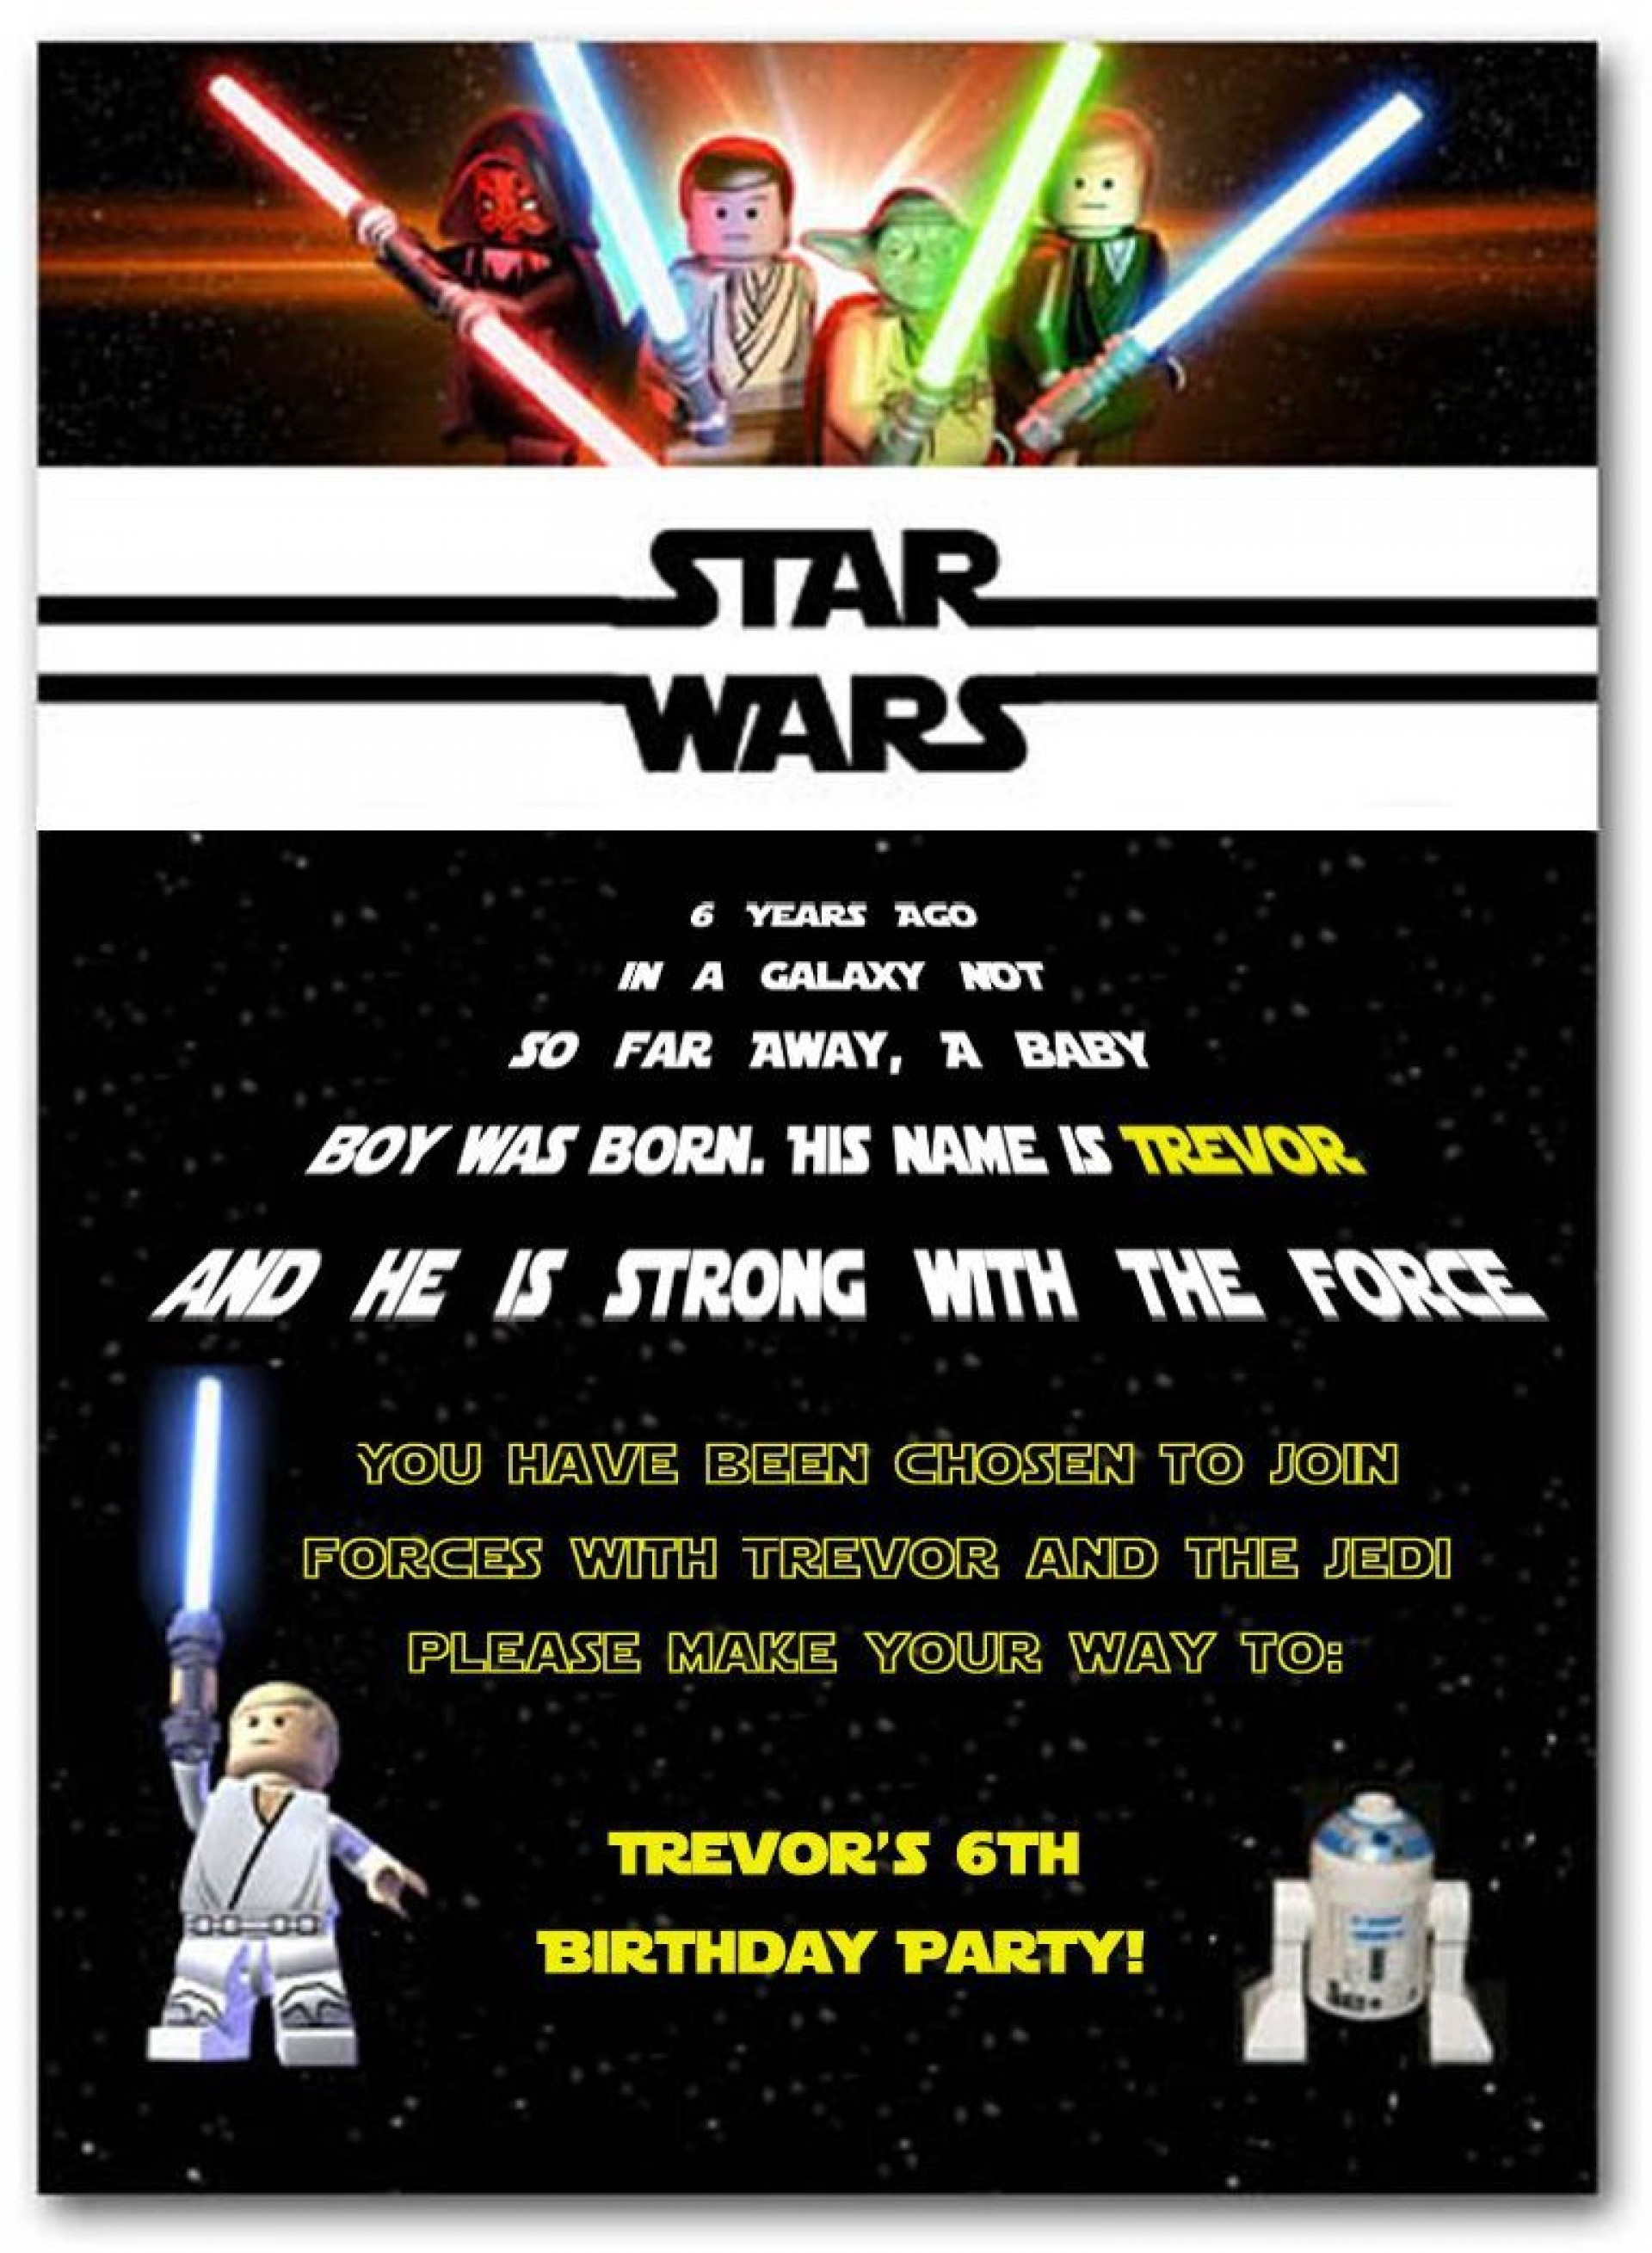 003 Staggering Star War Birthday Invitation Template Picture  Free Party Printable1920